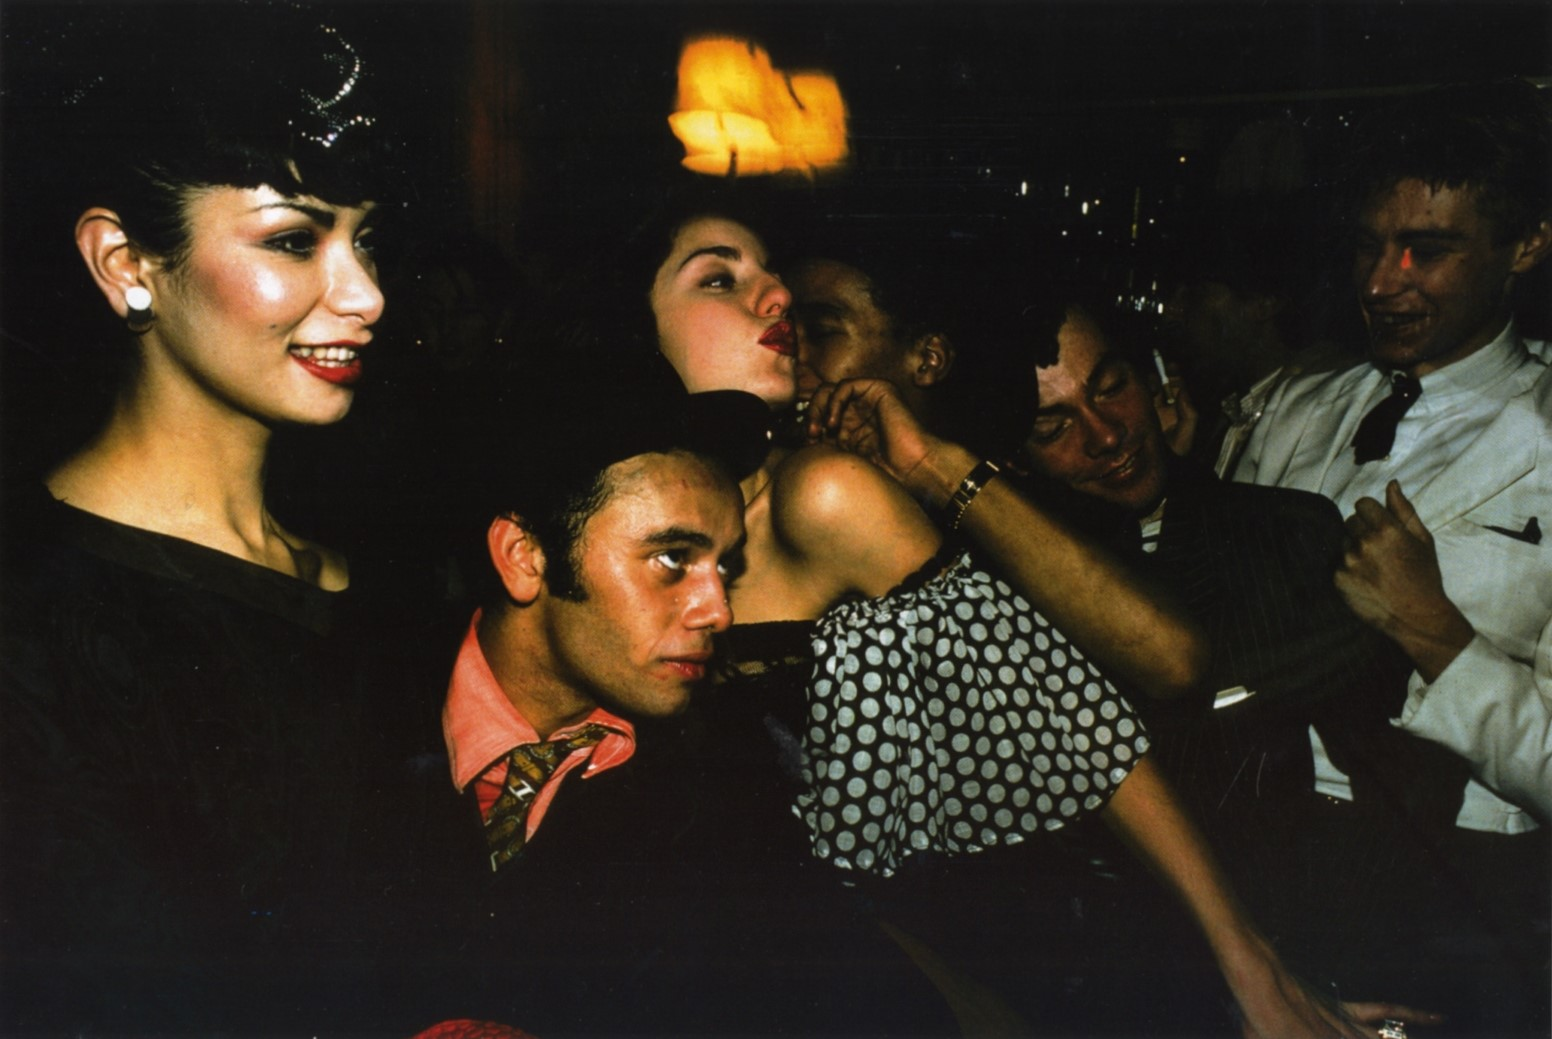 PALACE | PARIS | 80s | PHOTOGRAPHY WILLIAM KLEIN | V MAGAZINE | MARCH/APRIL 2003